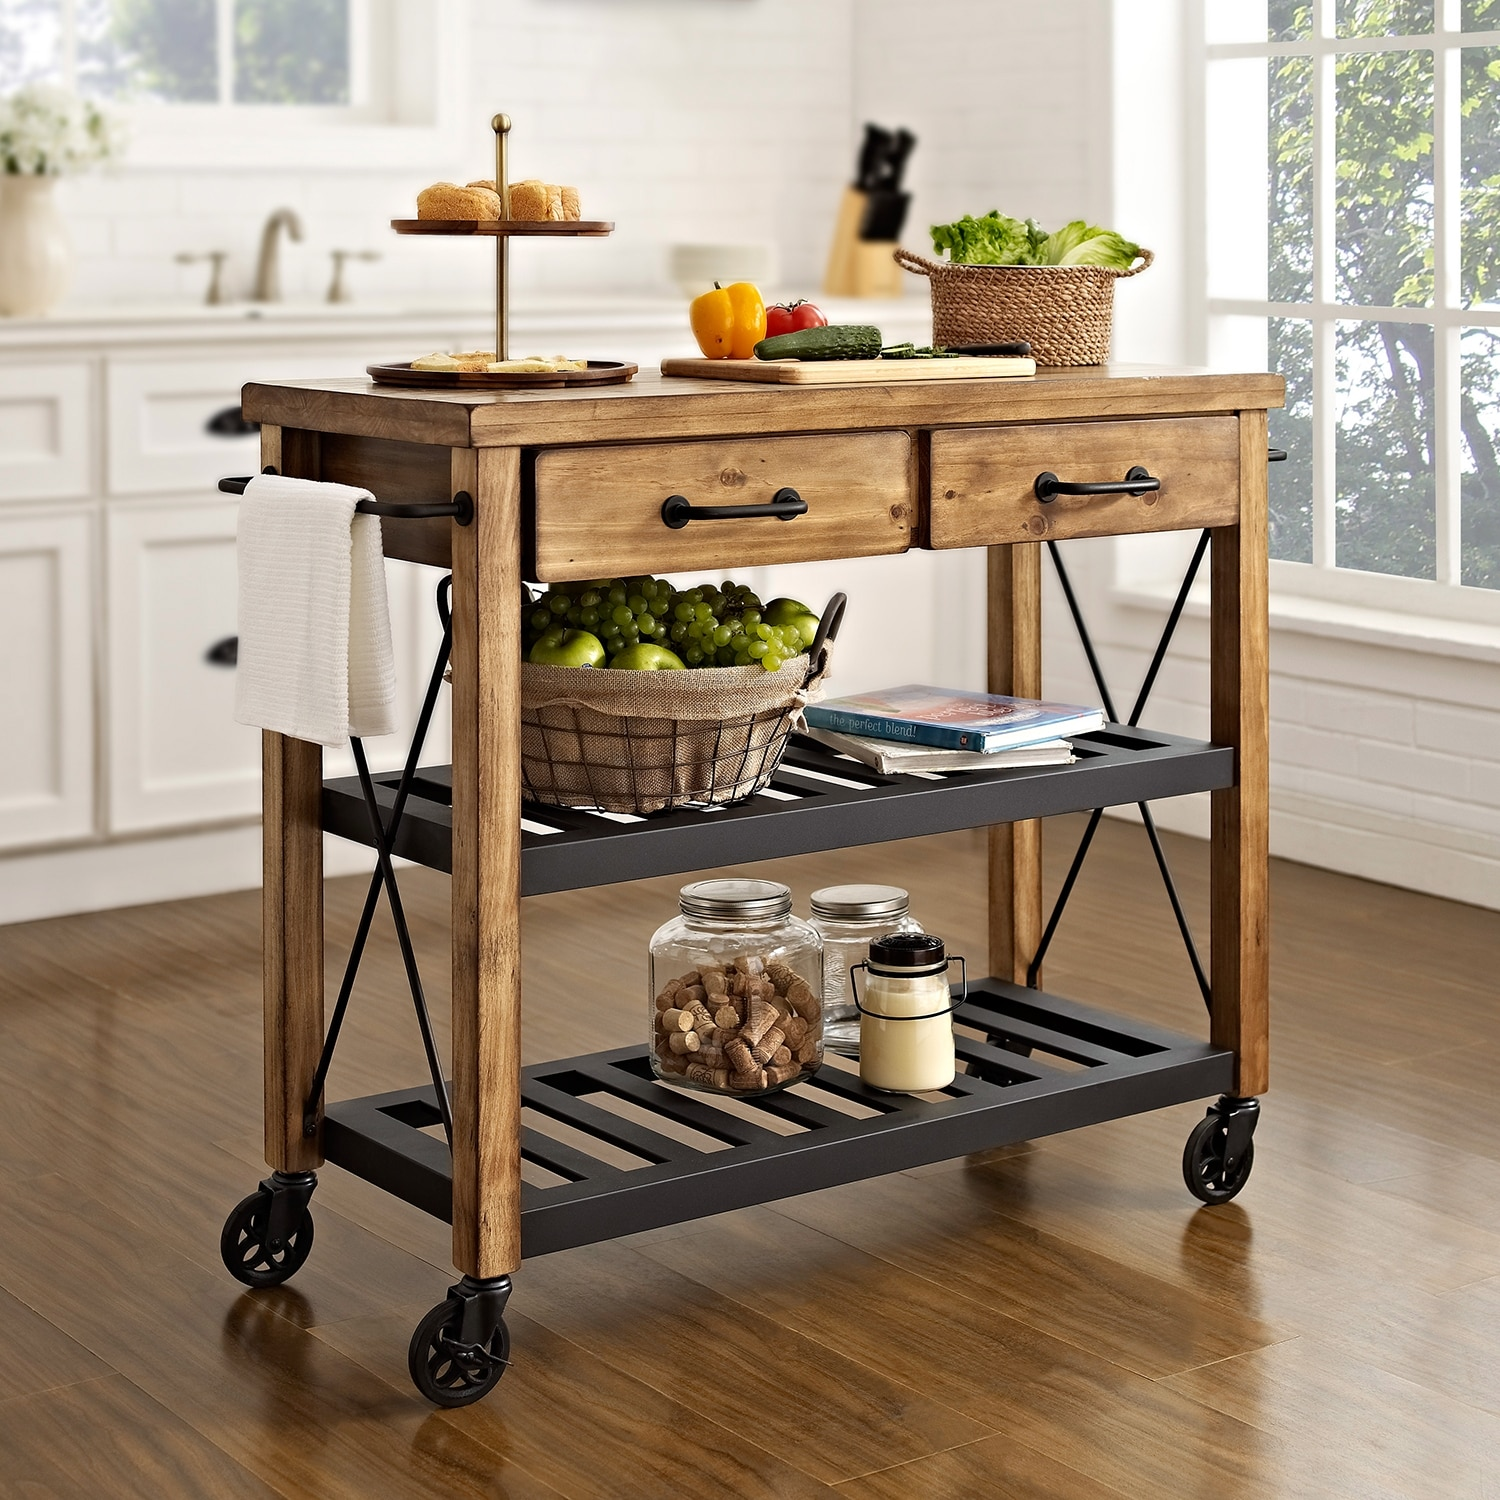 kitchen cart table cherry wood cabinets photos fremont natural american signature furniture click to change image